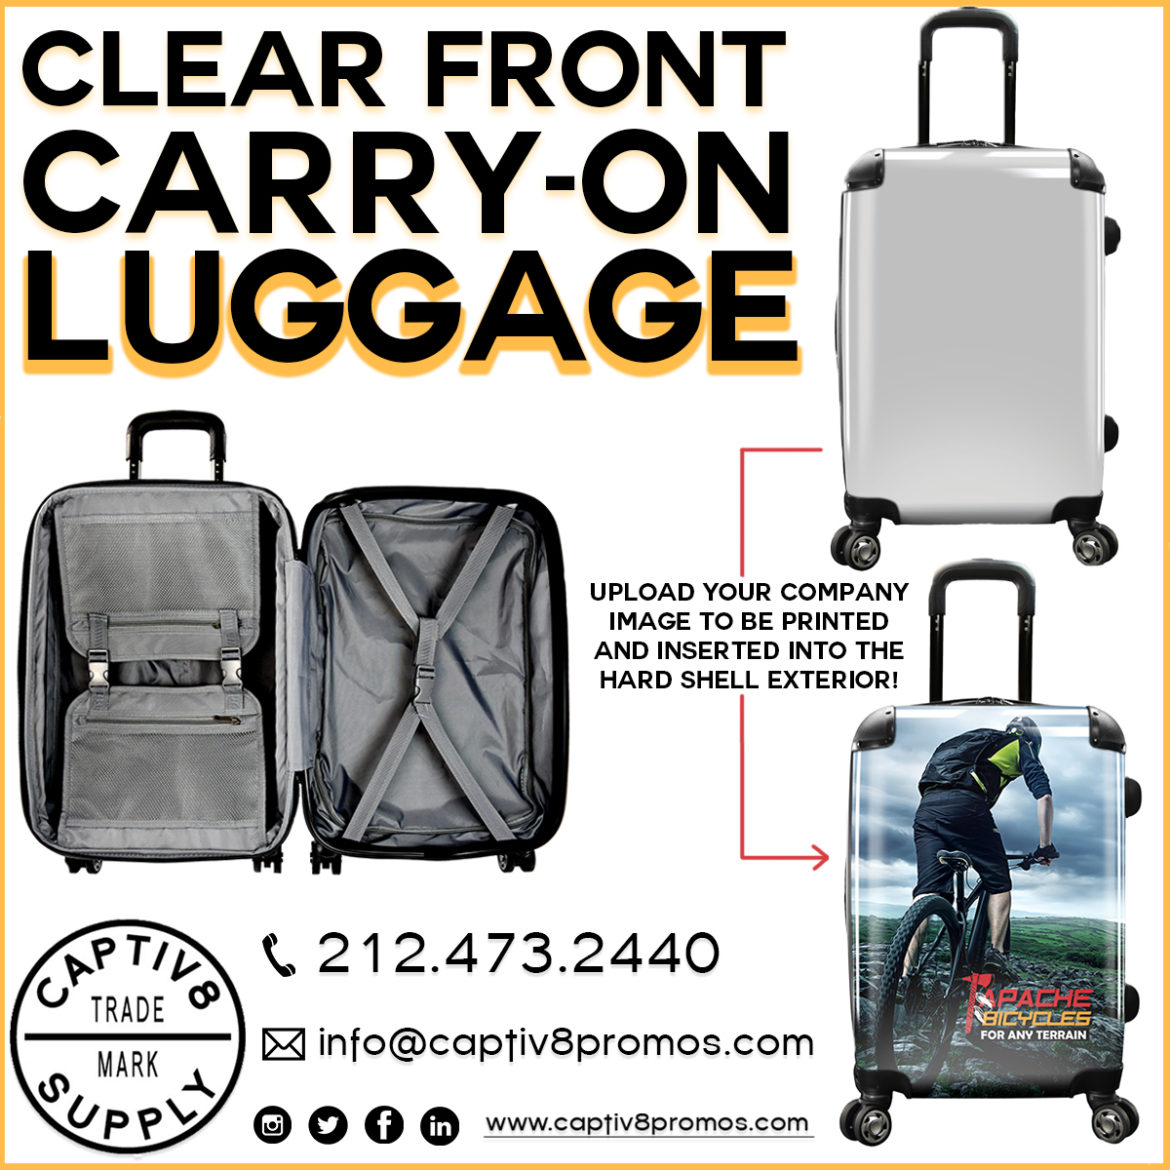 e39751929386 Captiv8 Supply  Bring your brand to life with this carry-on size luggage!  Turn your company image into a vibrant insert that resides inside the clear  front ...